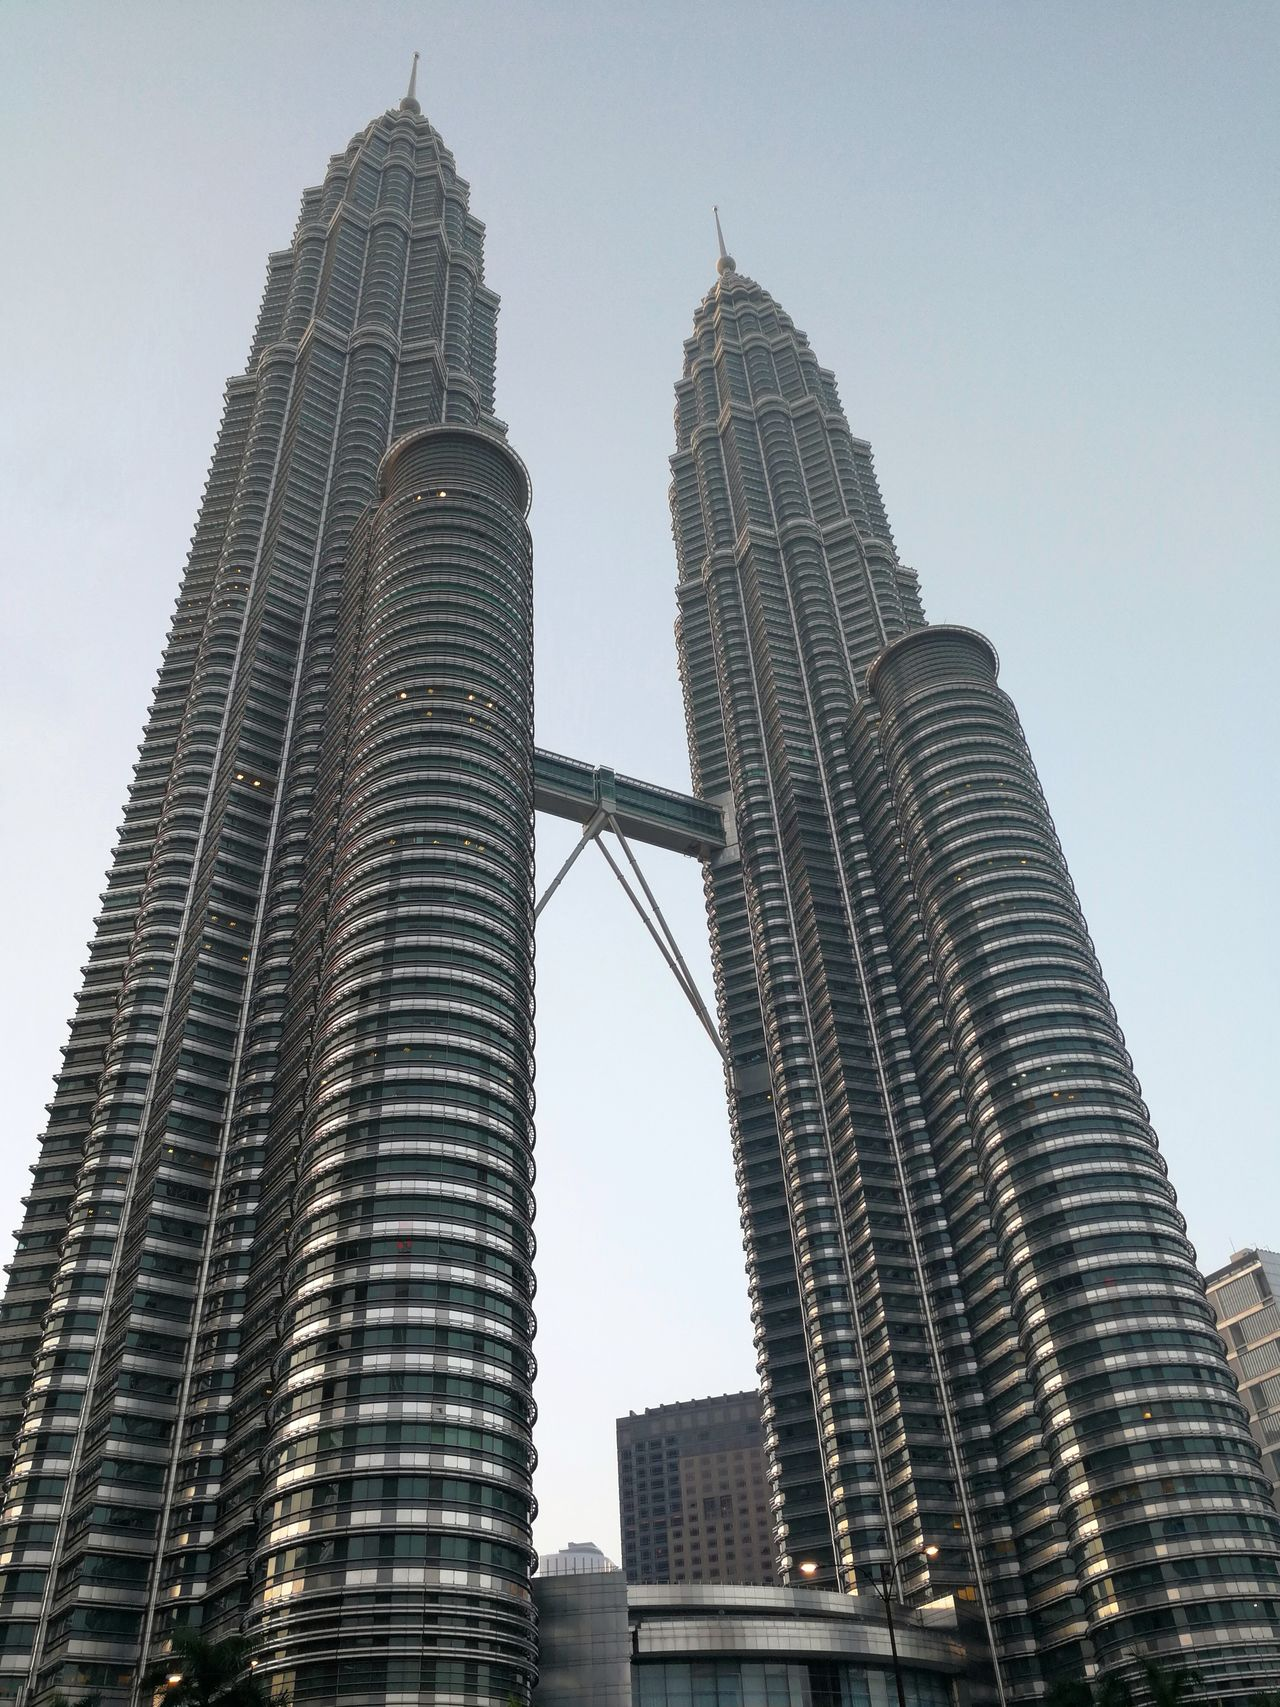 KLCC Twin Towers KLCC Tower KLCC❤❤ KLCC View KLCCTwinTower Building Skycraper Skycrapers Skycrapercity Architecture Architecture_collection